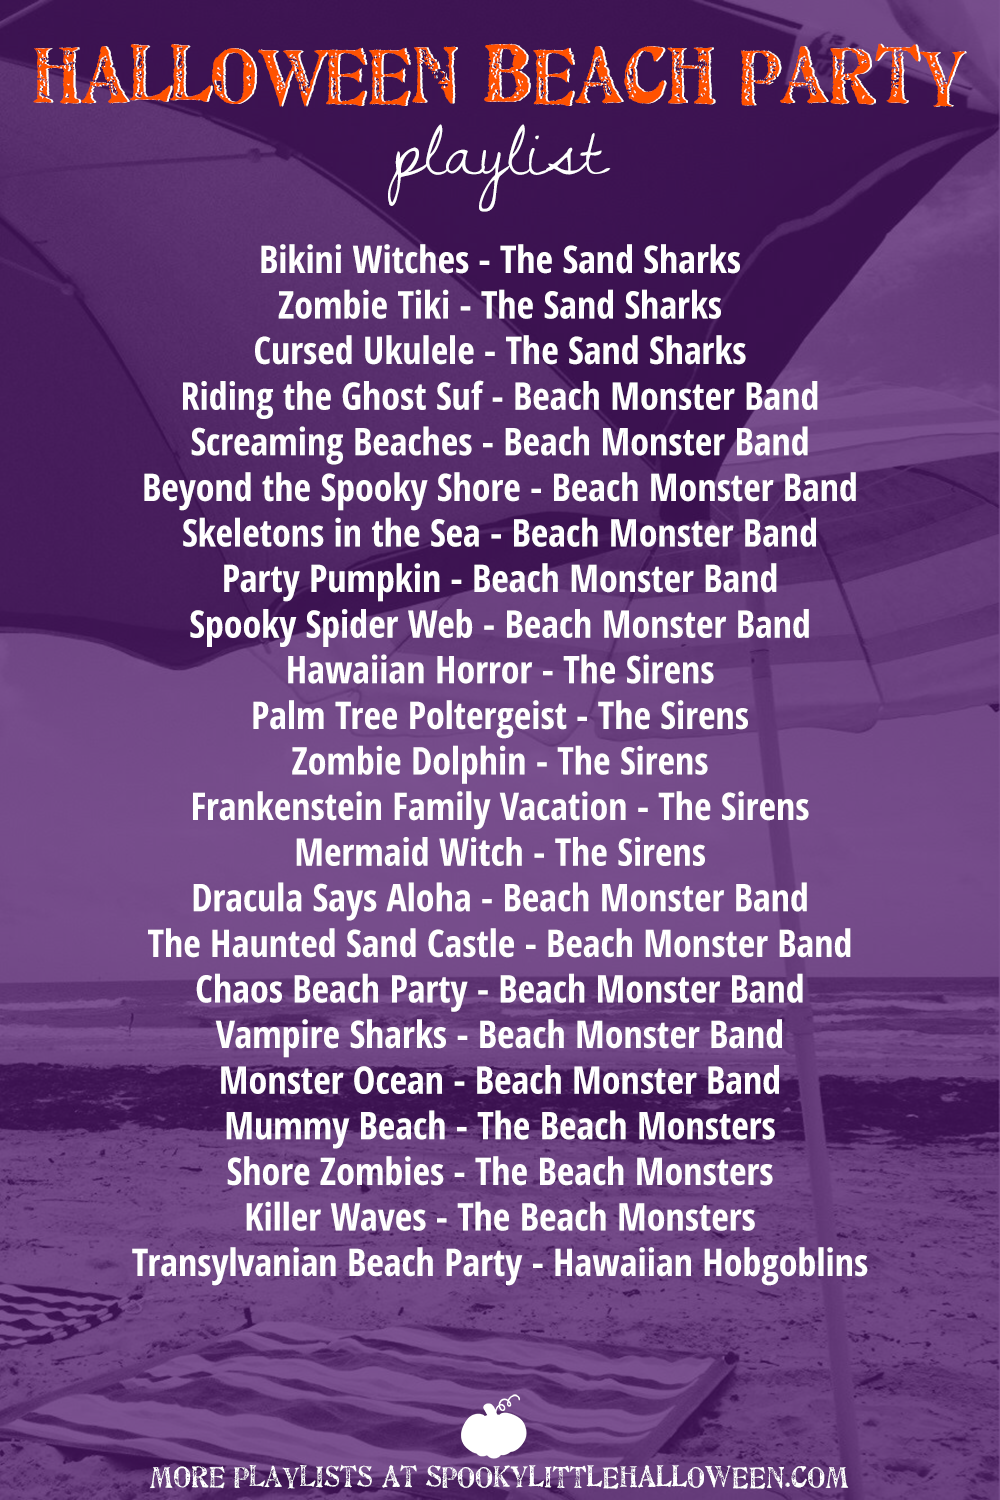 30+ items for a Halloween beach party + a playlist - Spooky Little ...